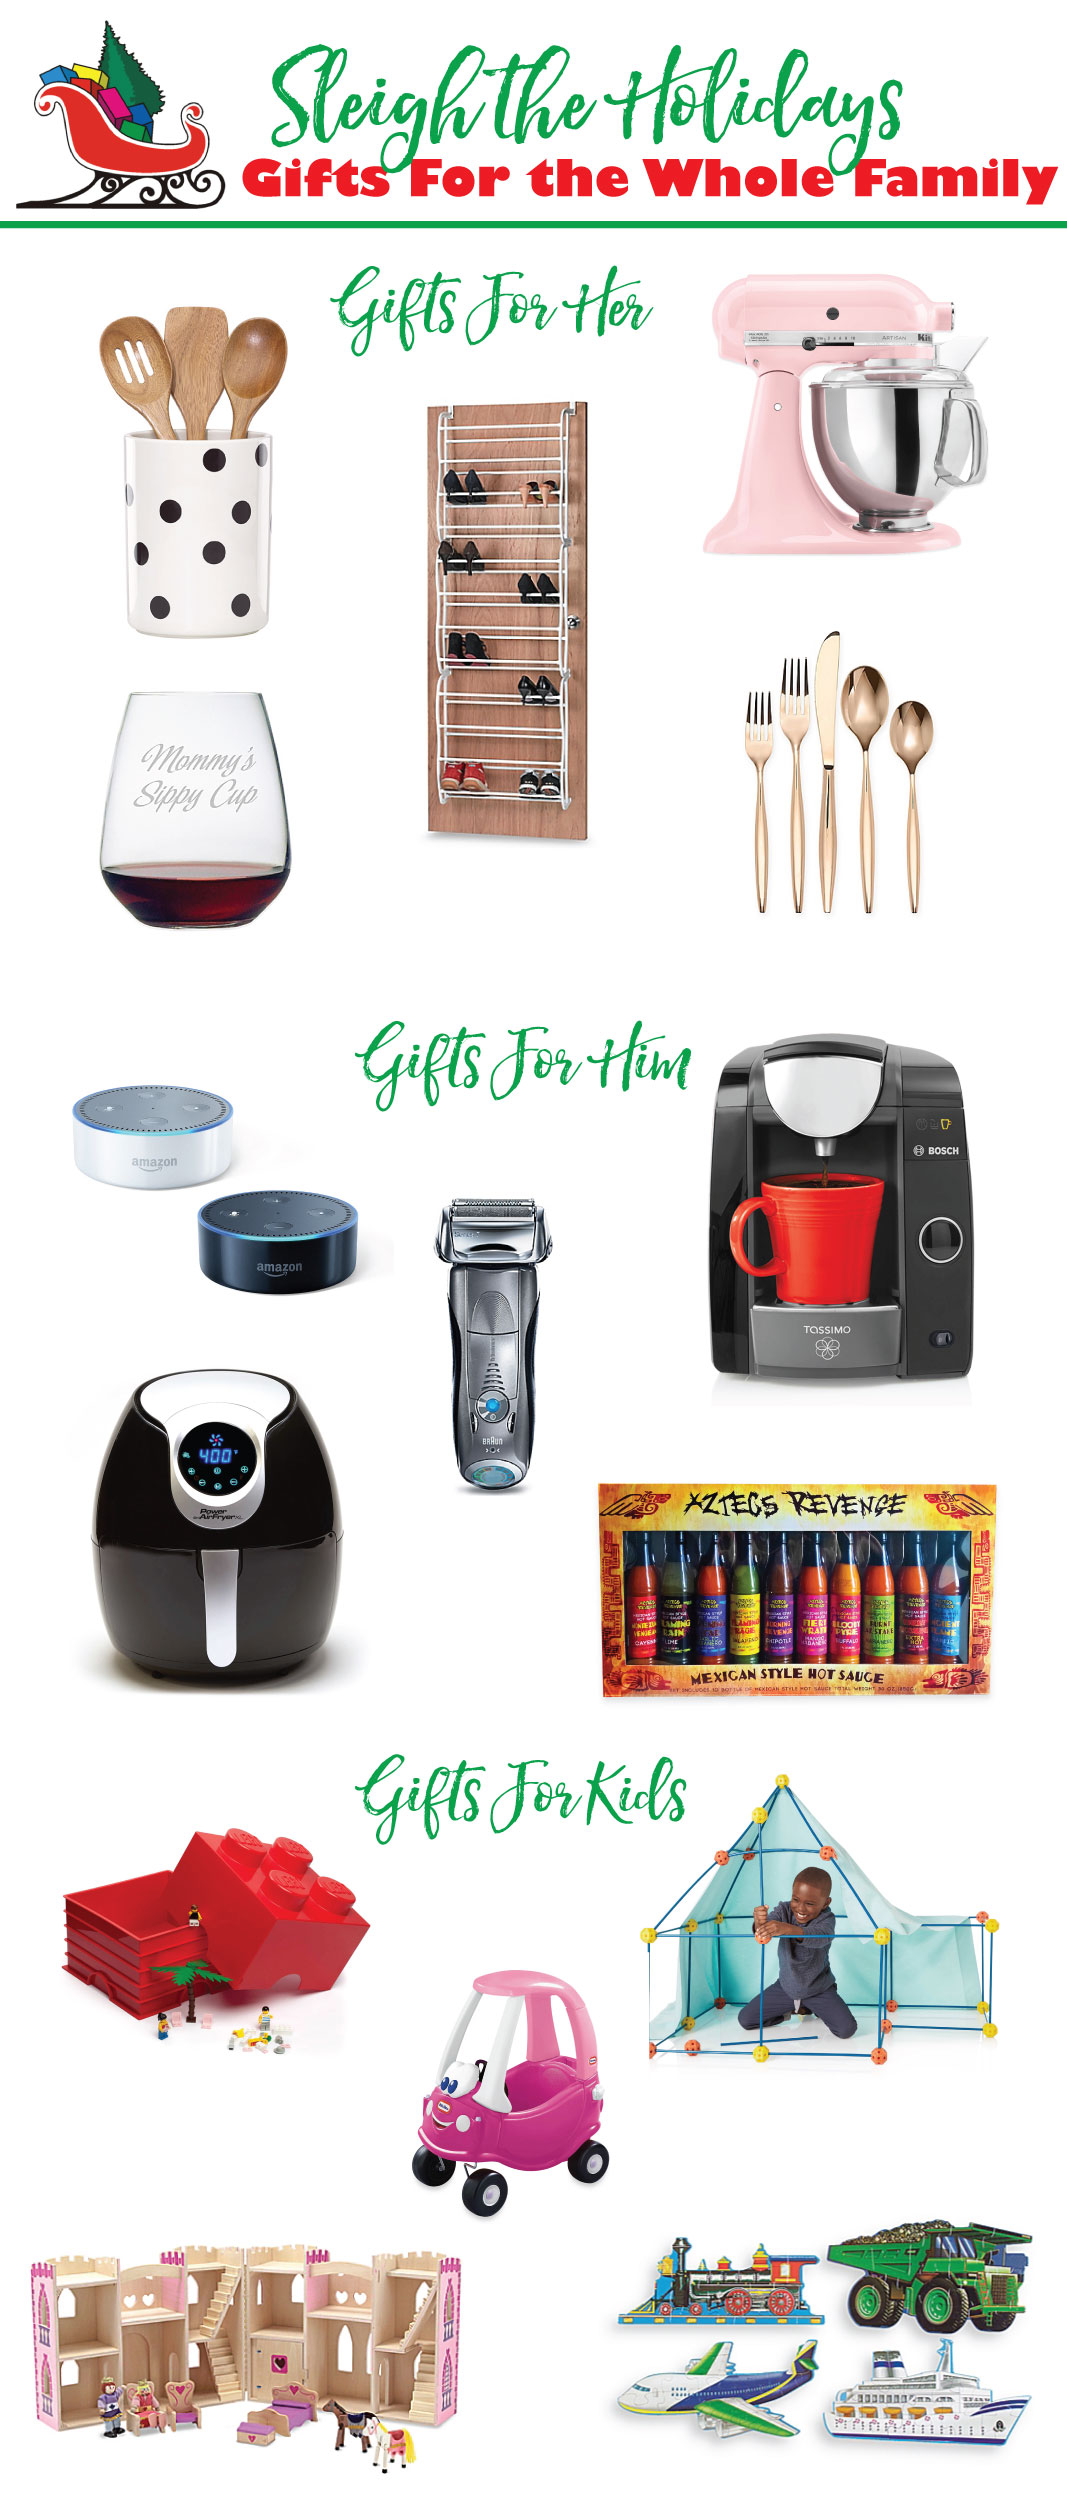 sleigh-the-holidays-gifts-for-the-whole-family-from-bed-bath-beyond